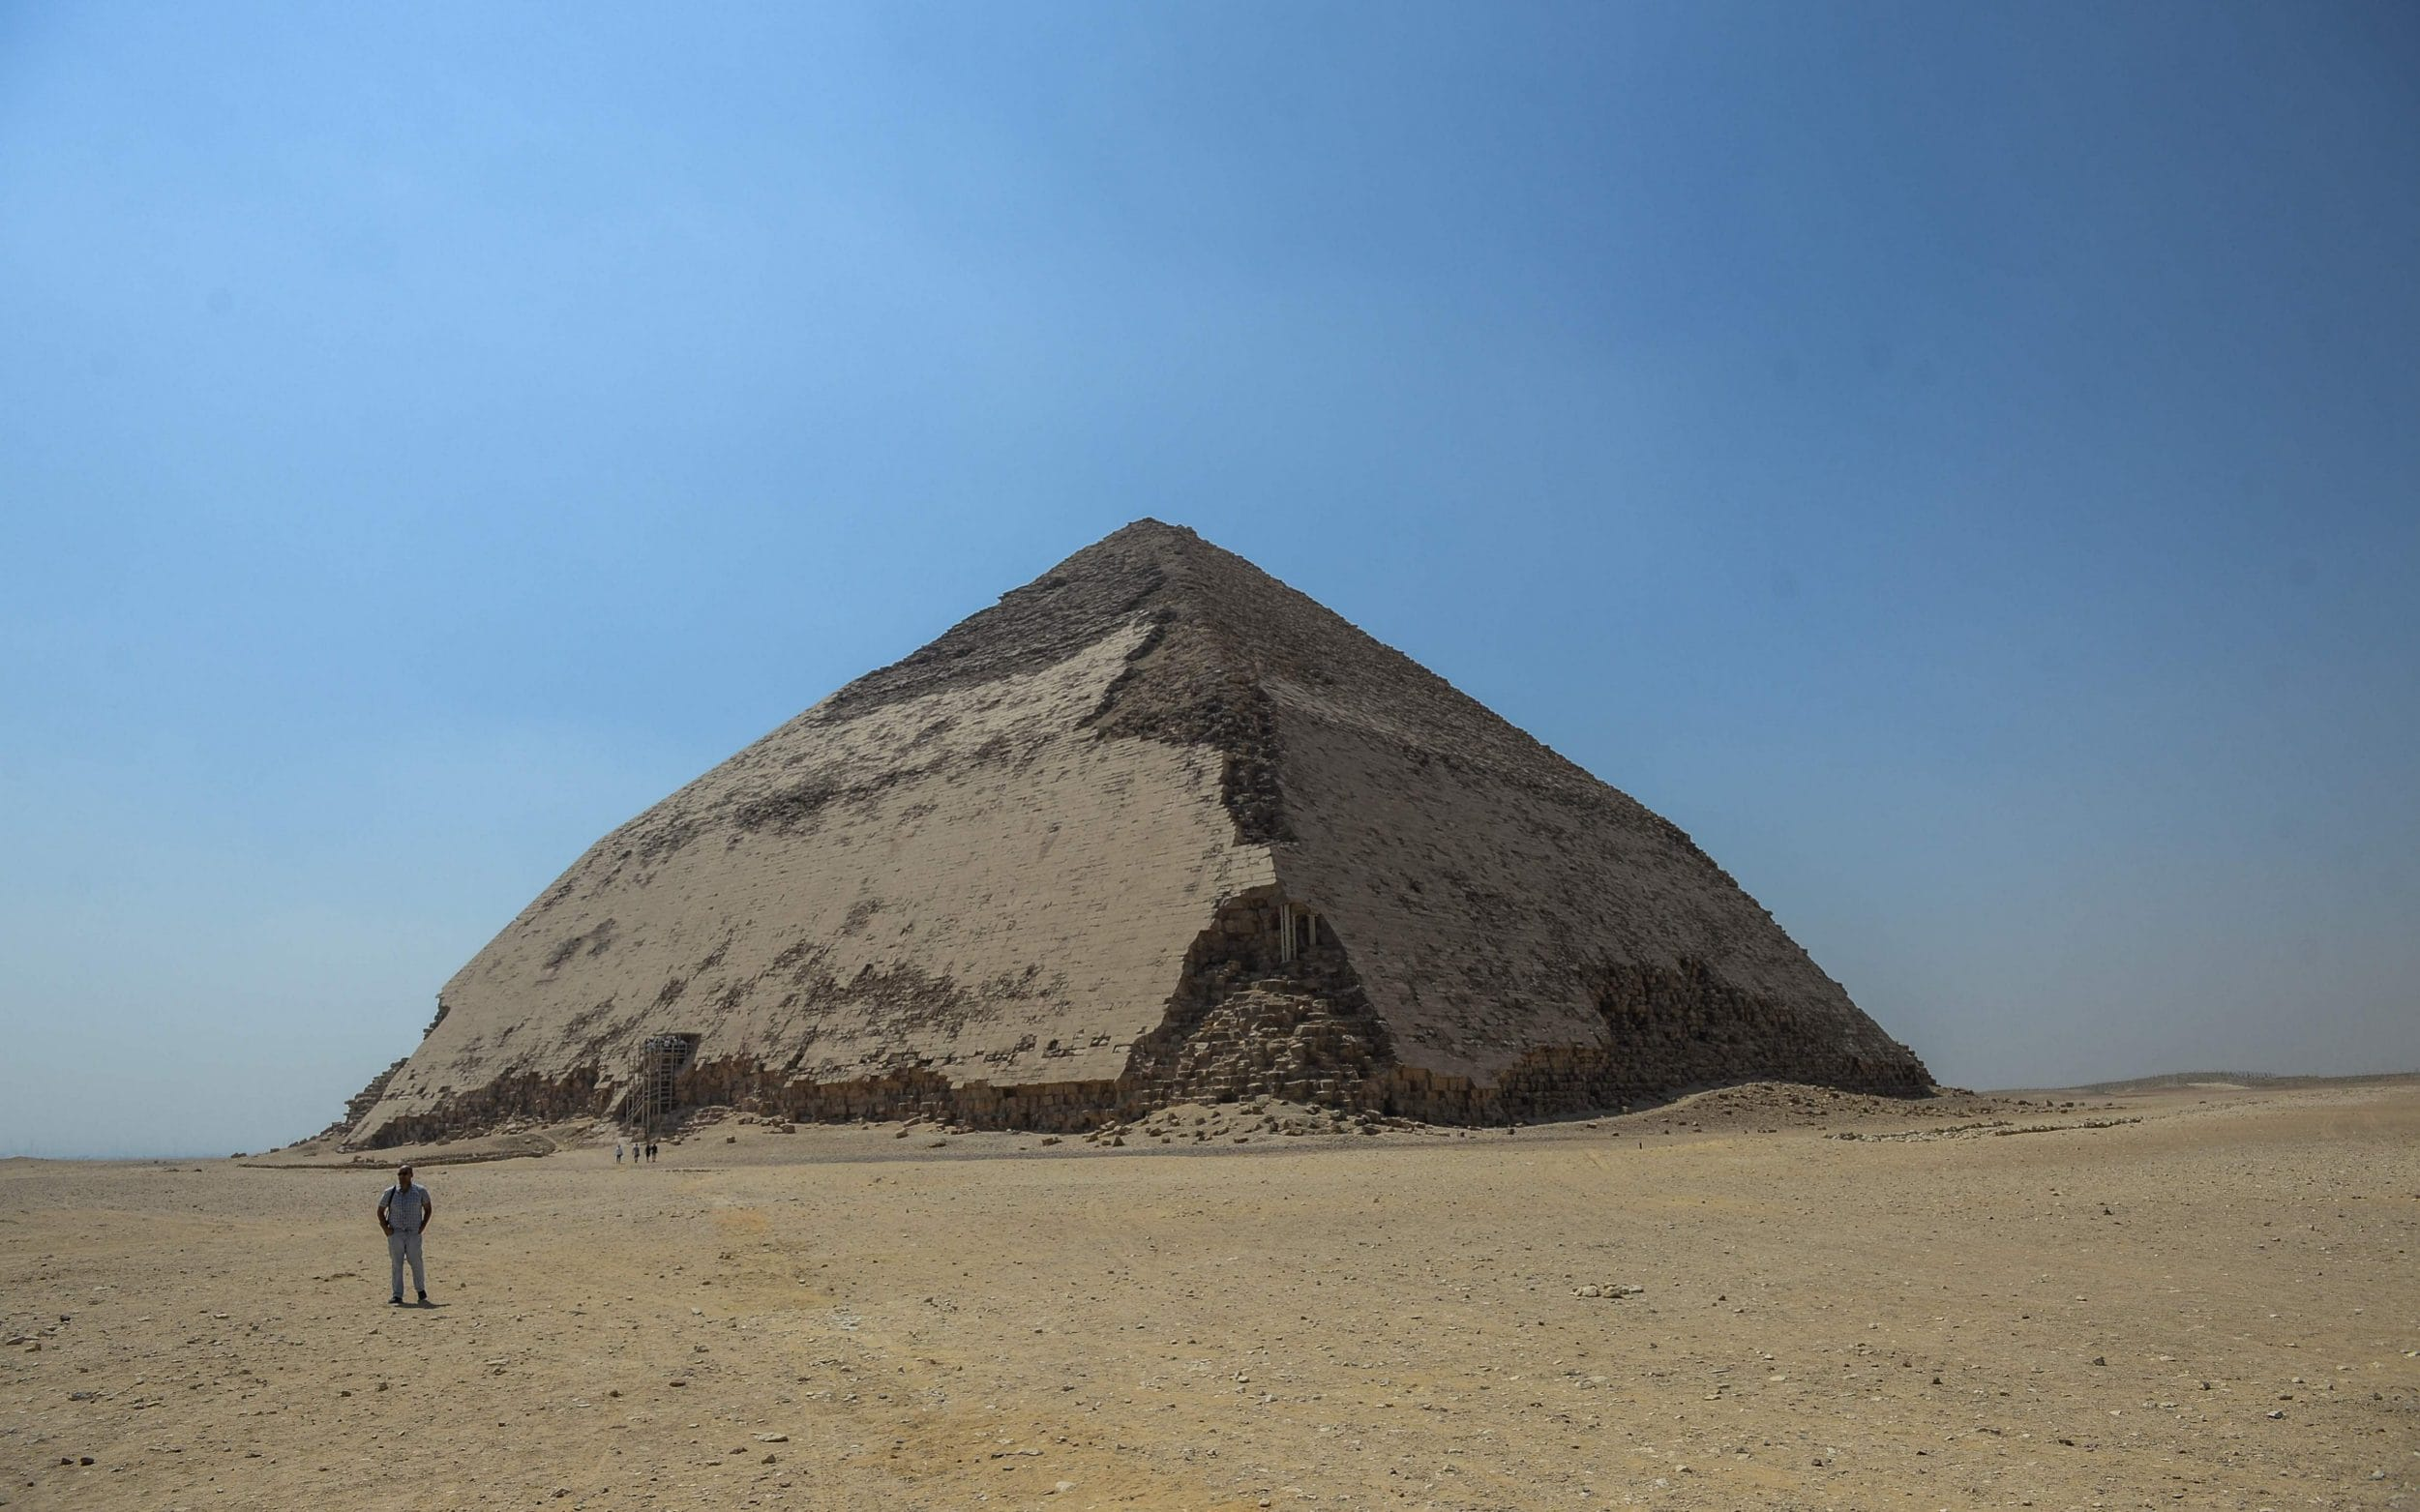 Egypts bent pyramid, a 4,600-year old landmark in ancient construction, opens to visitors